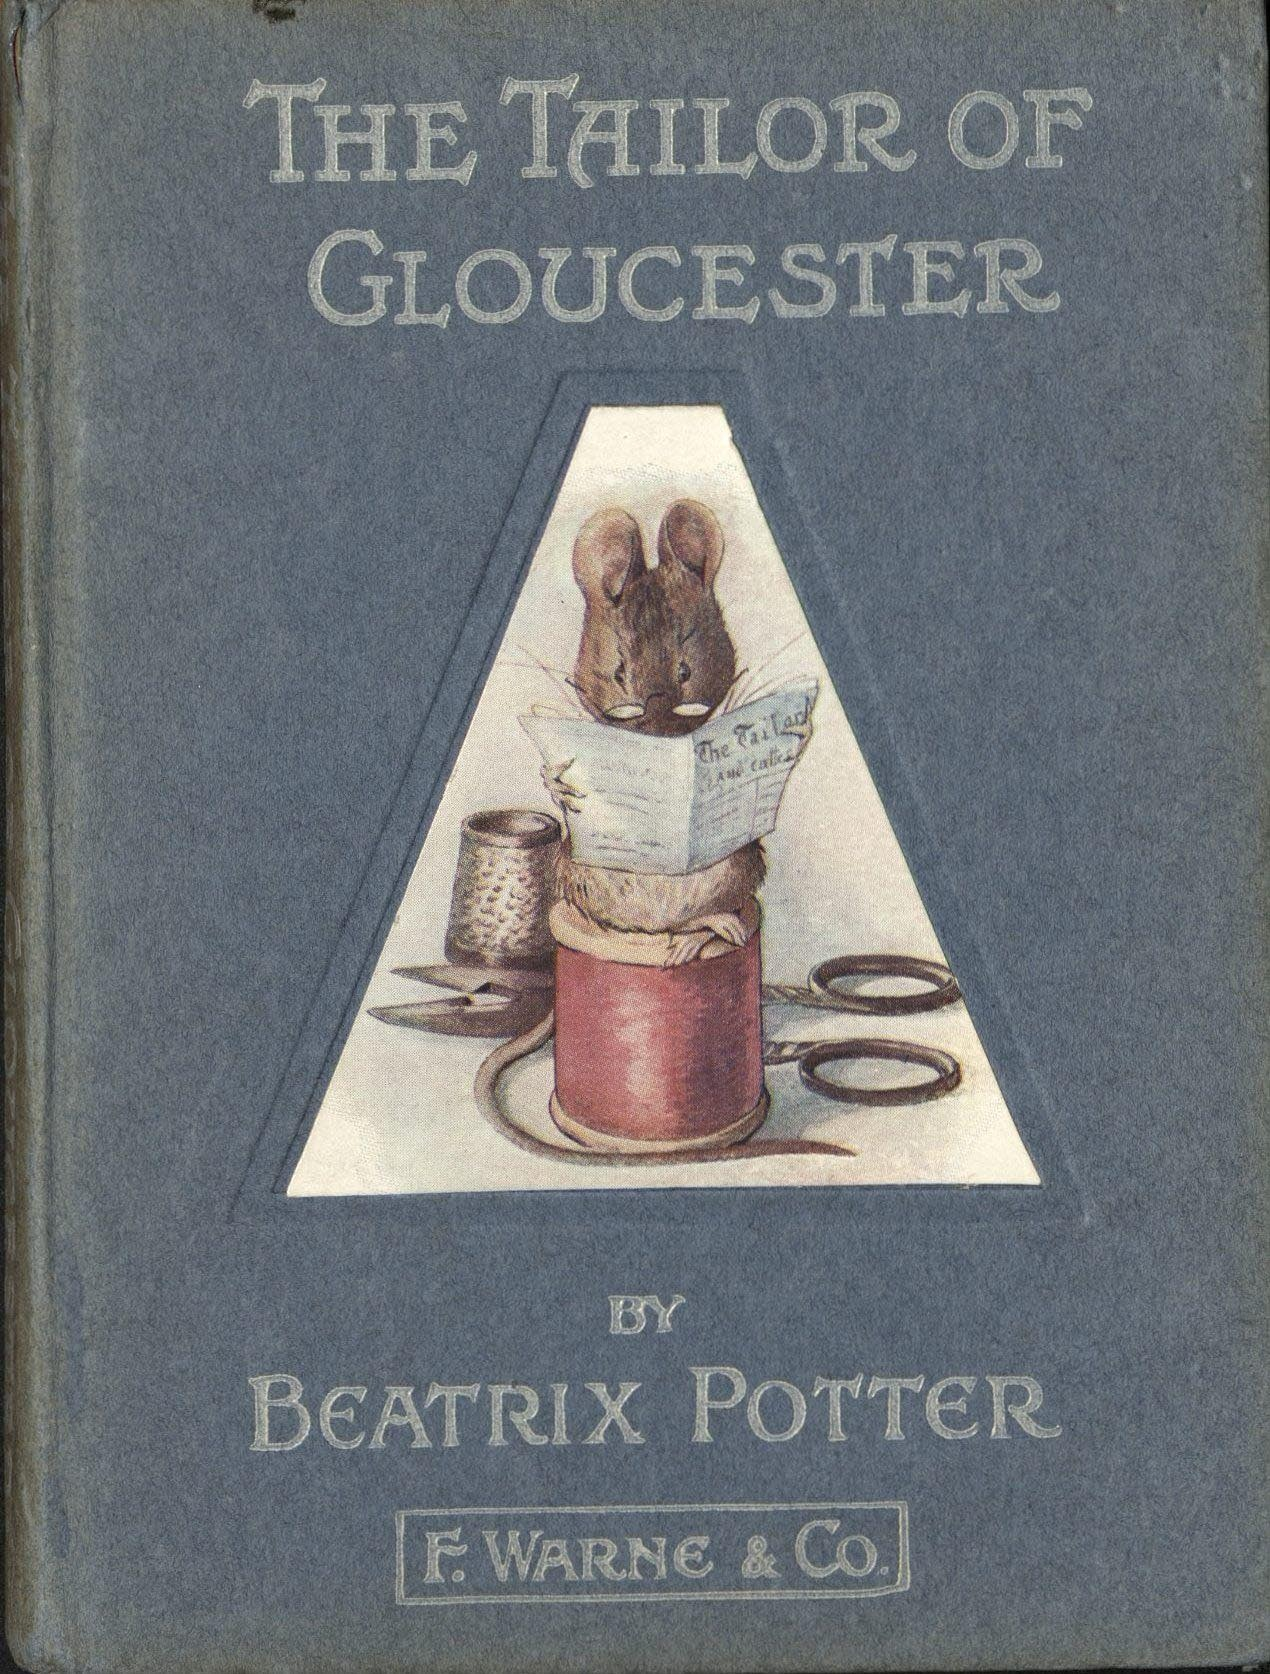 Interior illustration of The Tailor of Gloucester